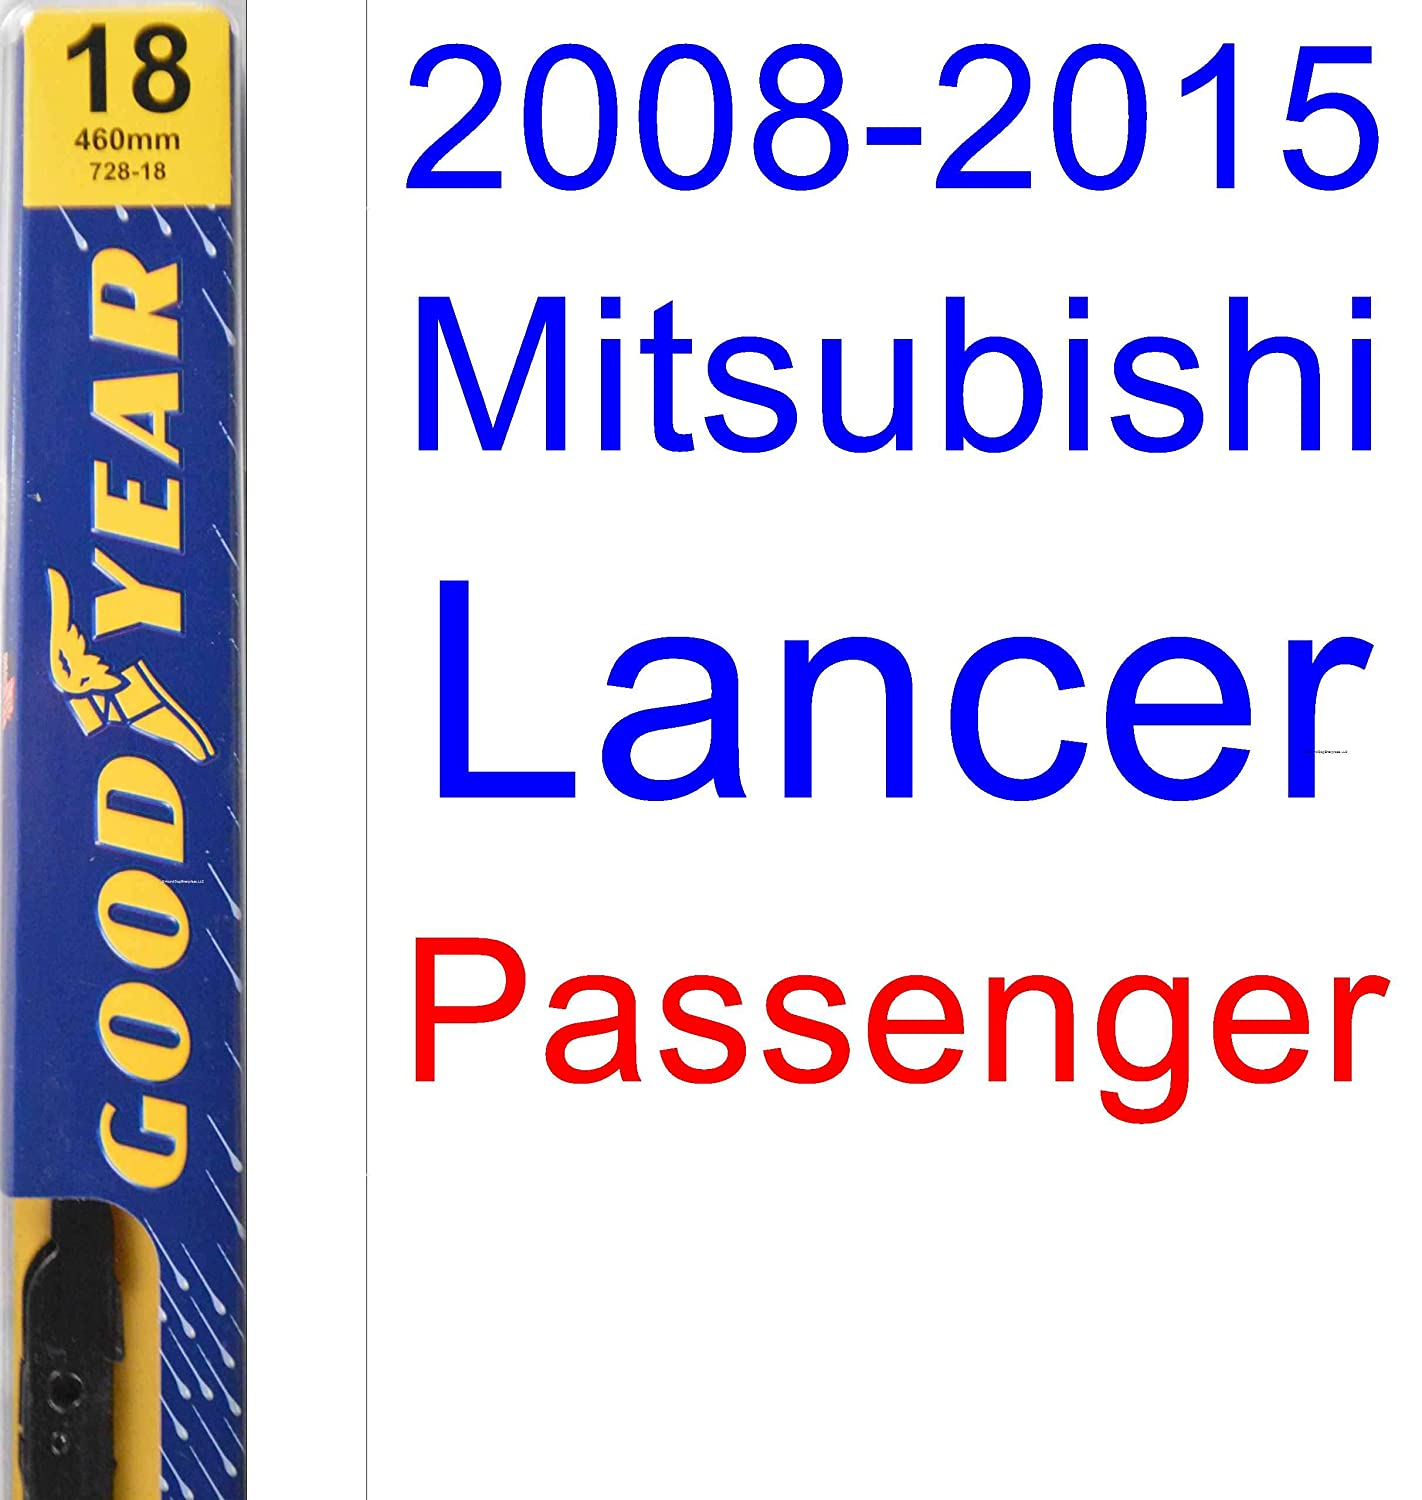 Amazon.com: 2008-2015 Mitsubishi Lancer Replacement Wiper Blade Set/Kit (Set of 2 Blades) (Goodyear Wiper Blades-Premium) (2009,2010,2011,2012,2013,2014): ...